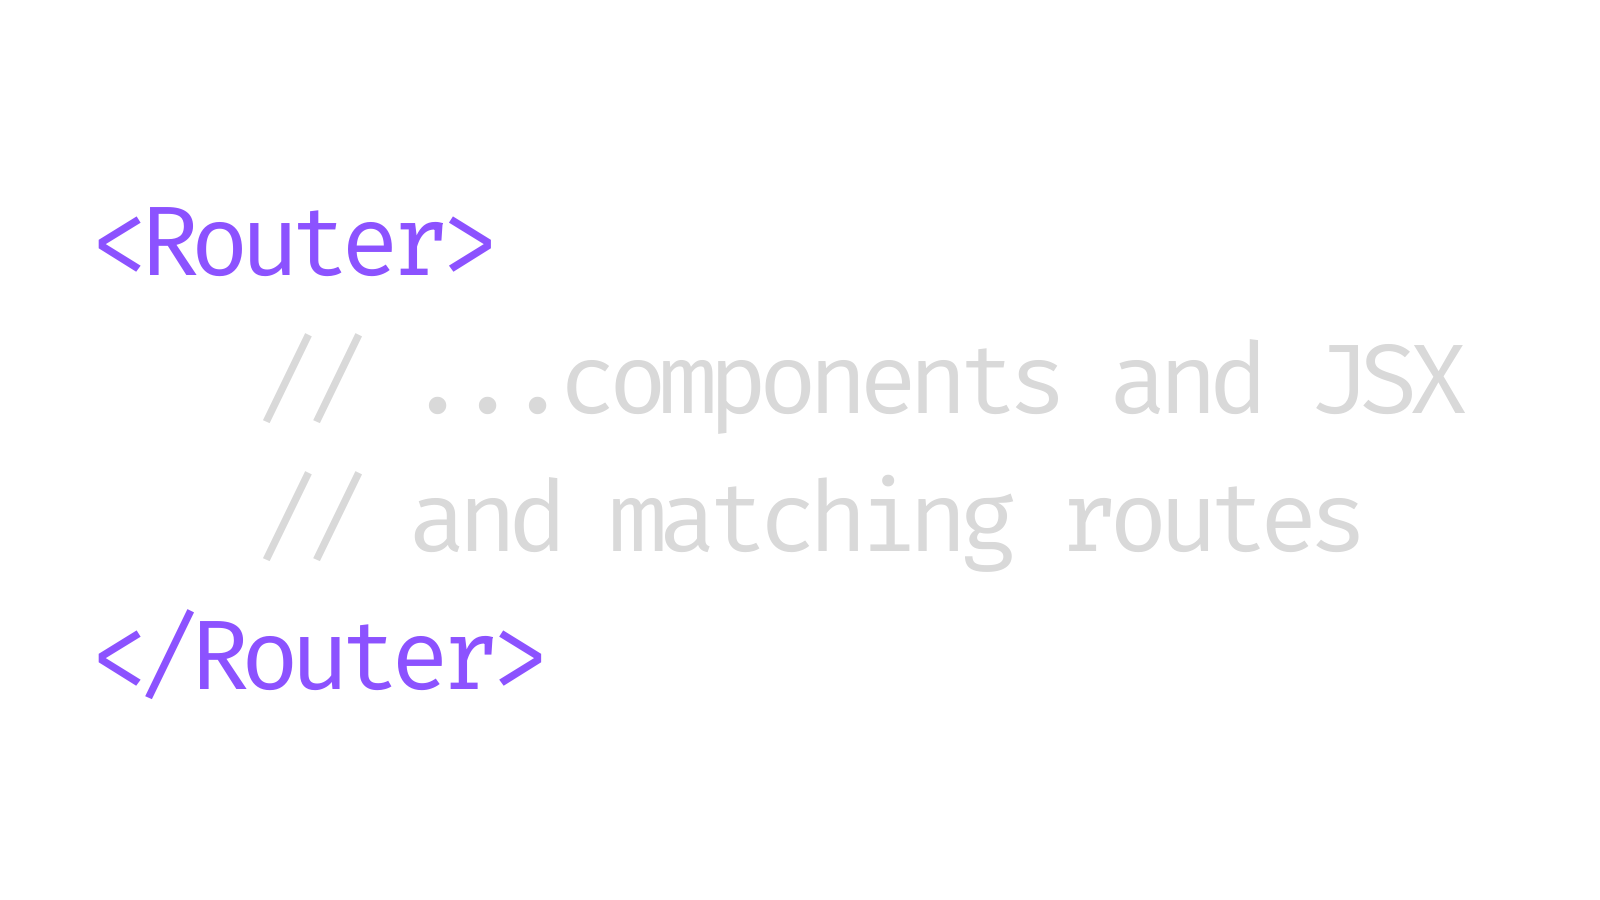 Browser router code snippet